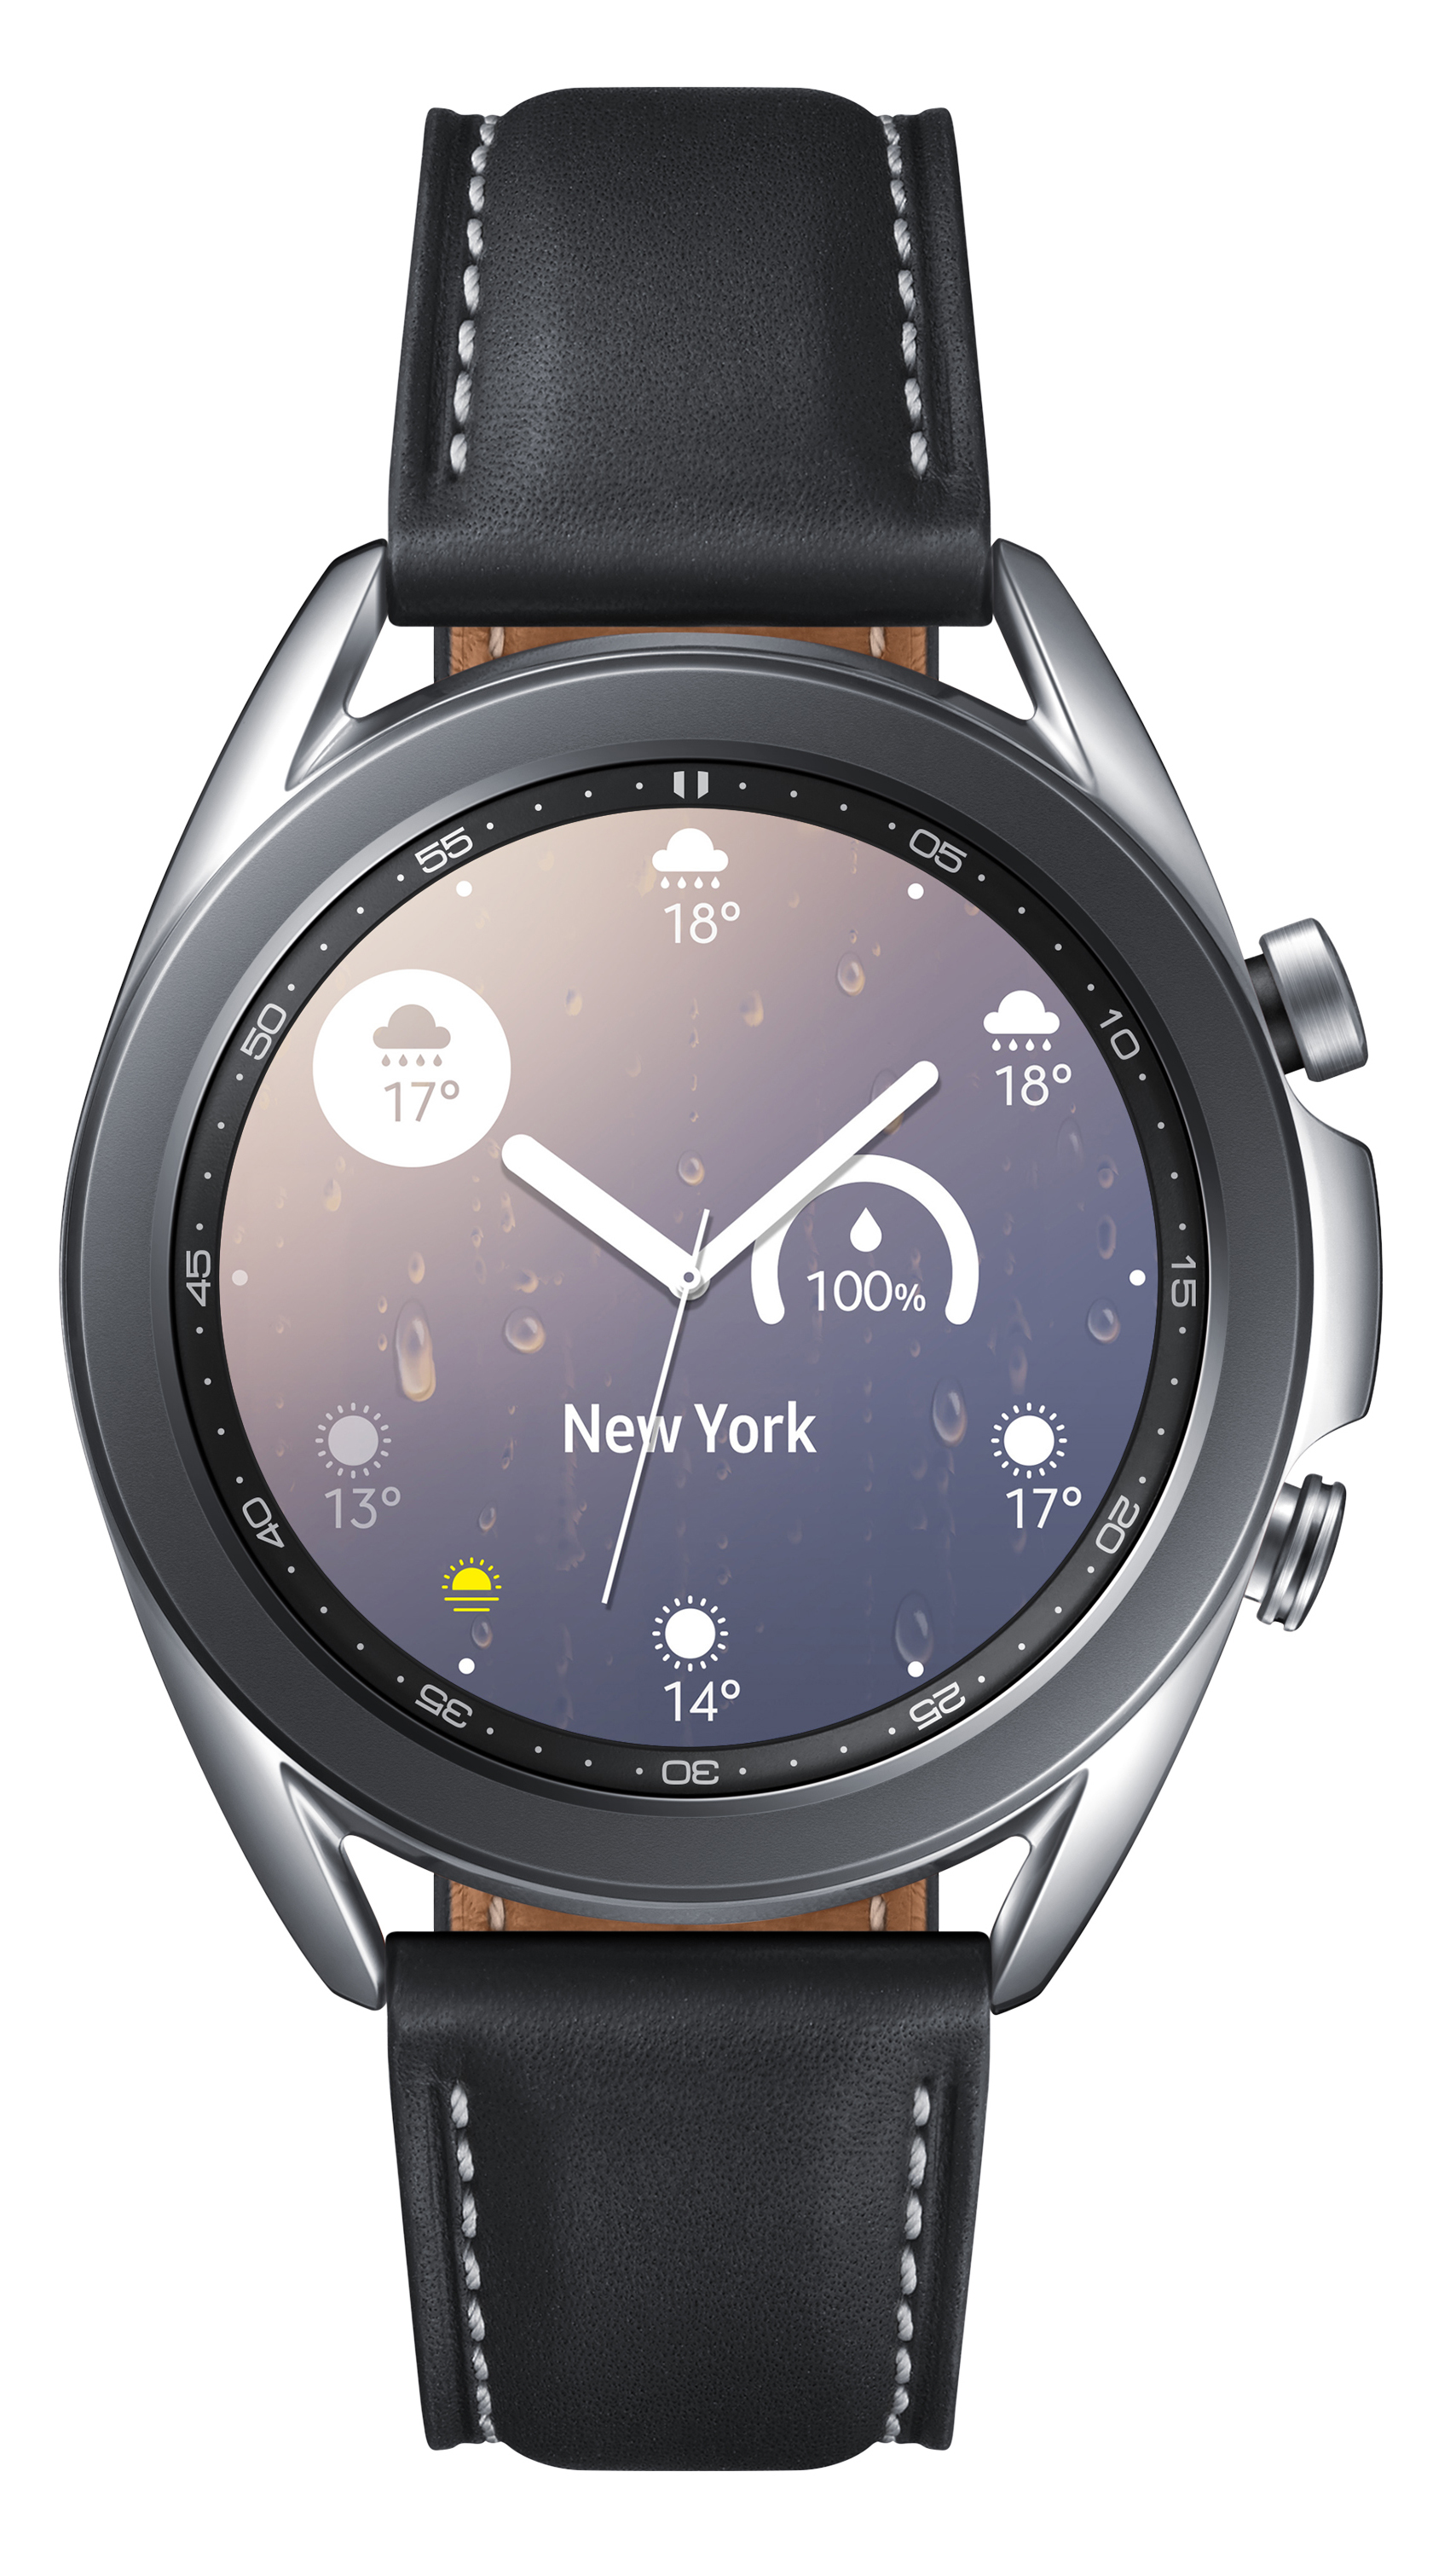 Montre connectée Galaxy Watch 3